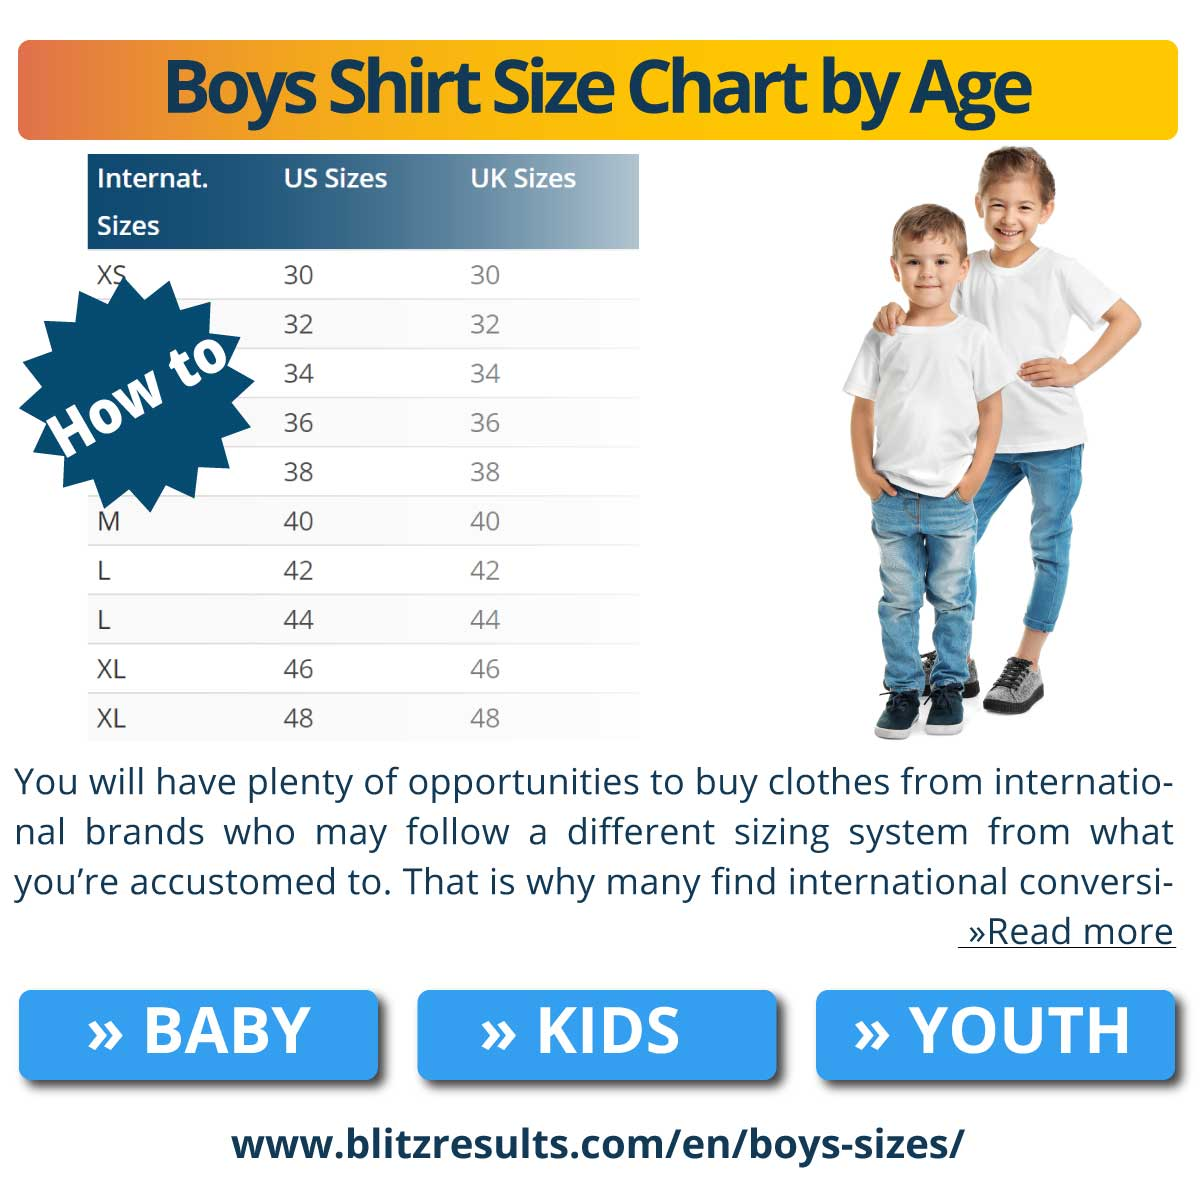 Boys Shirt Size Chart by Age